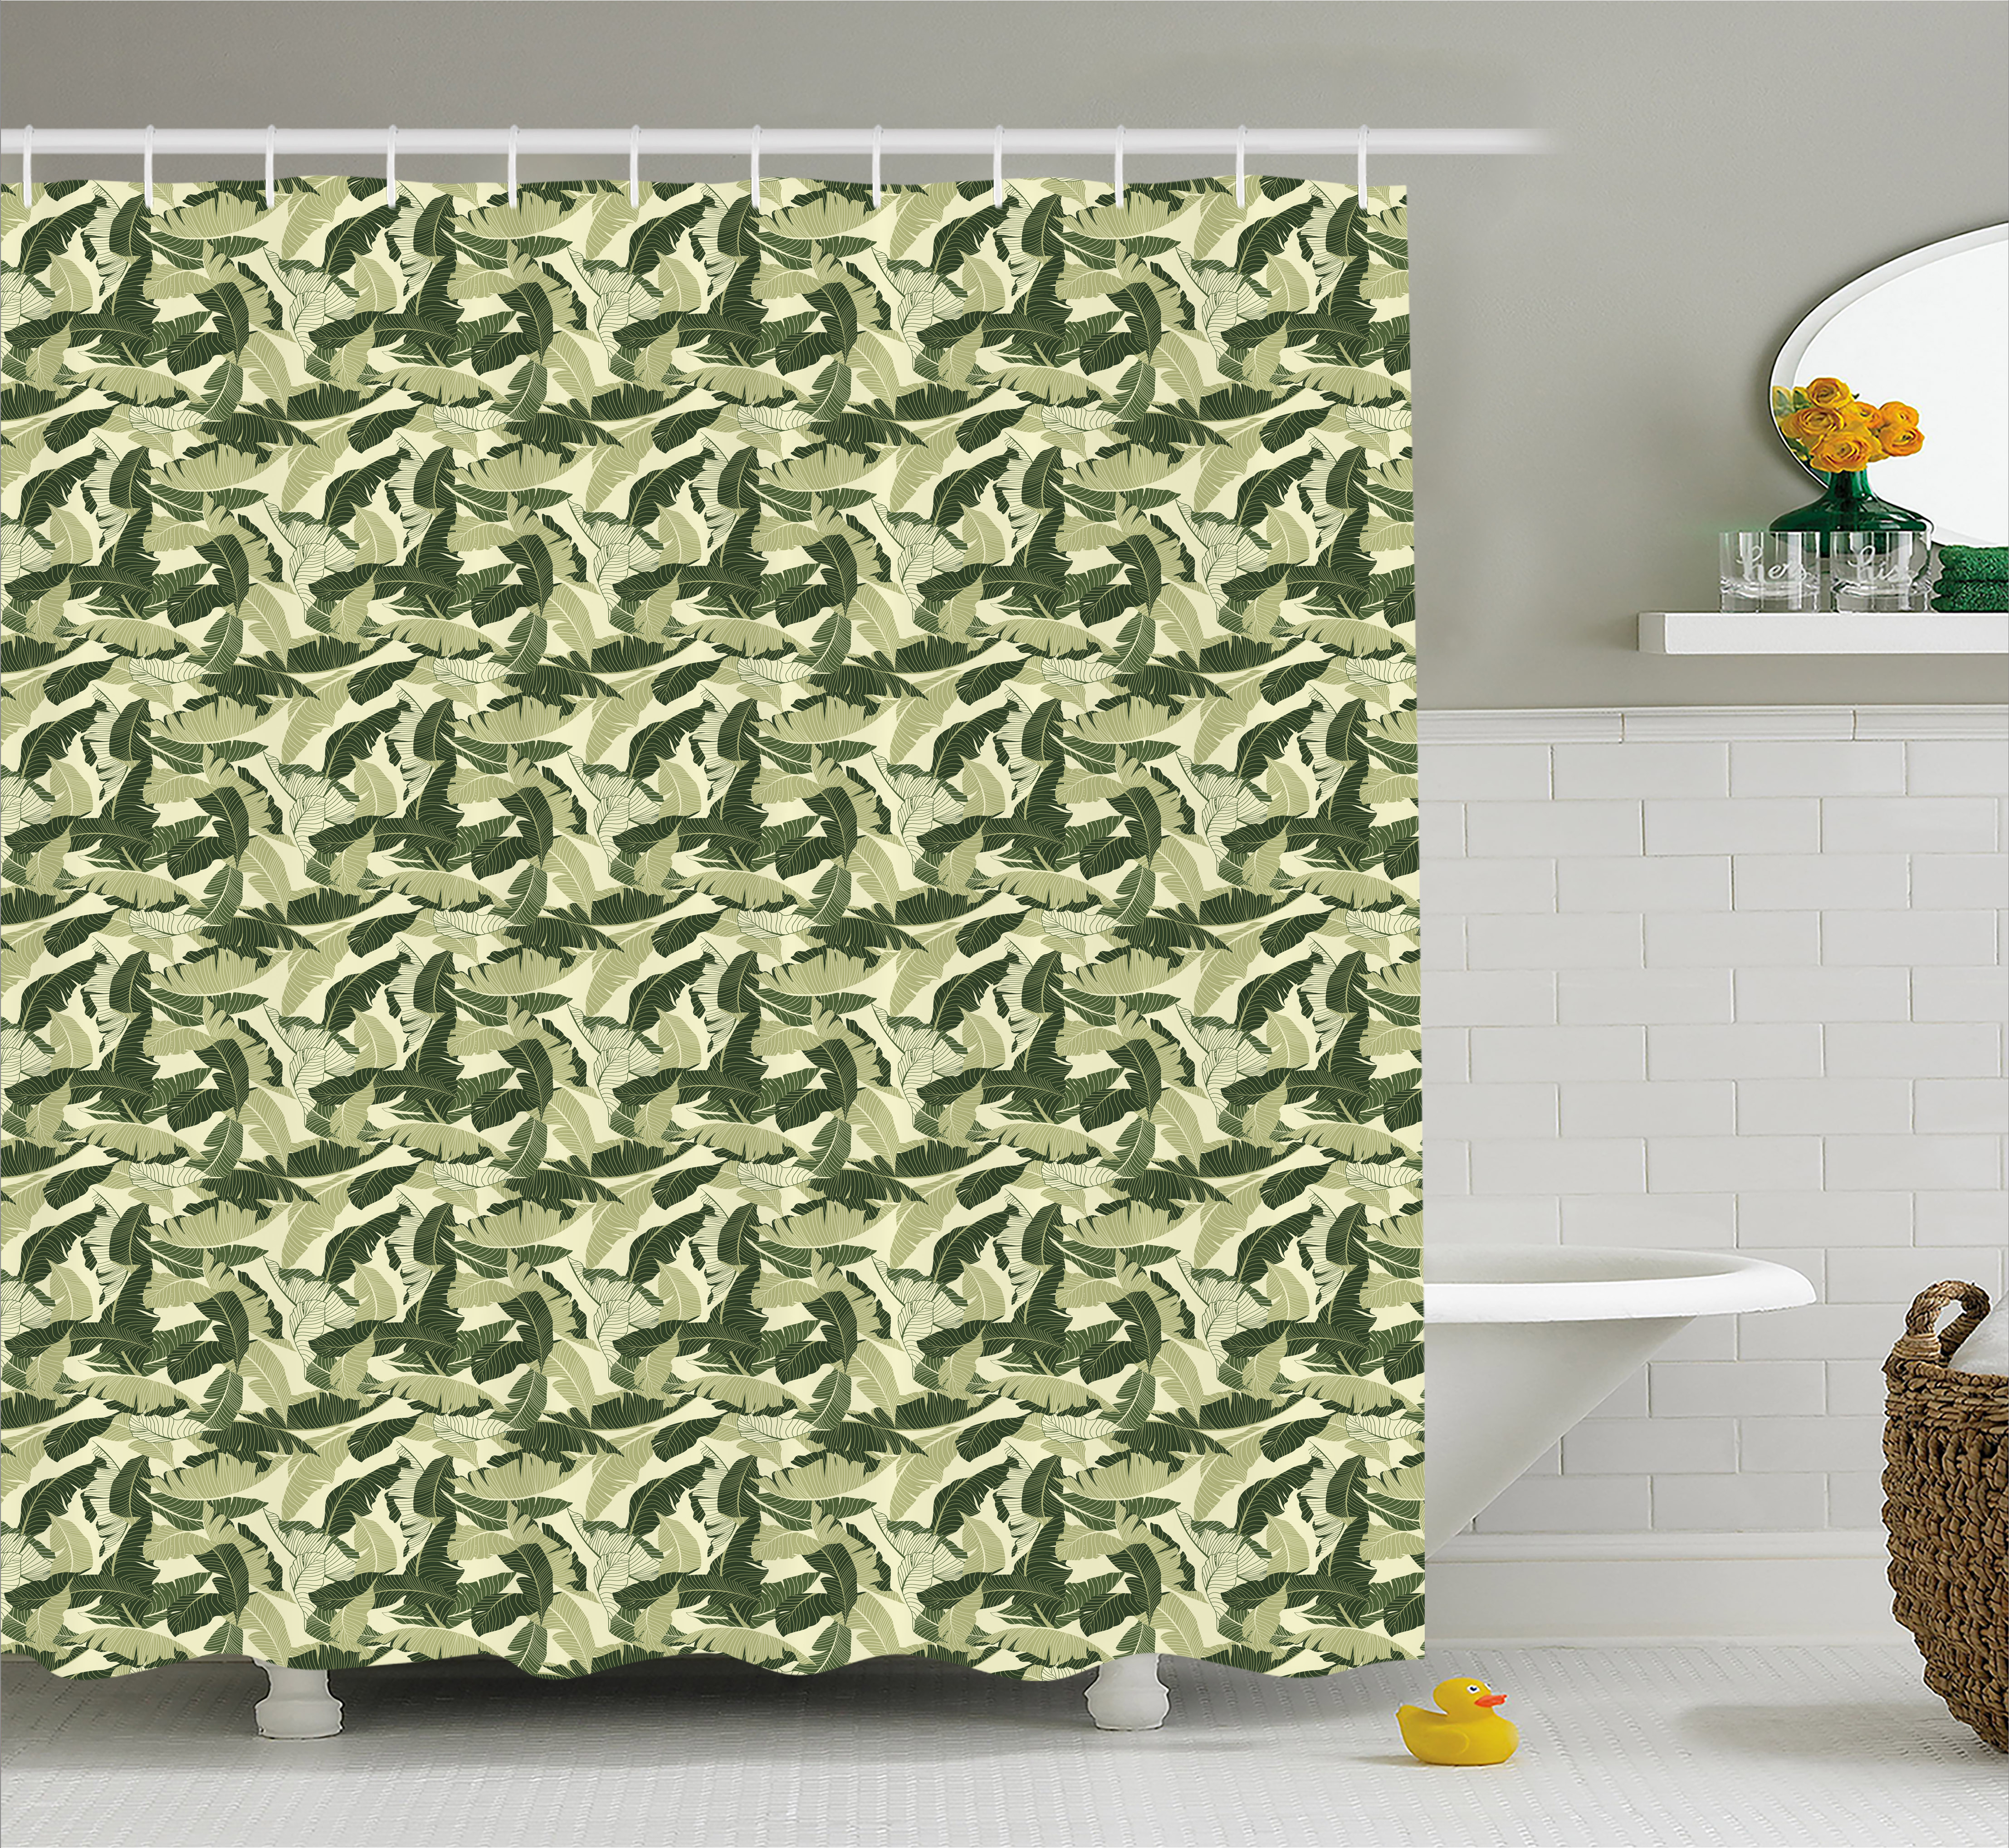 Banana Leaf Shower Curtain Caribbean Exotic Tree Foliage With Vintage Look In Green Shades Fabric Bathroom Set With Hooks Pale Green Dark Green By